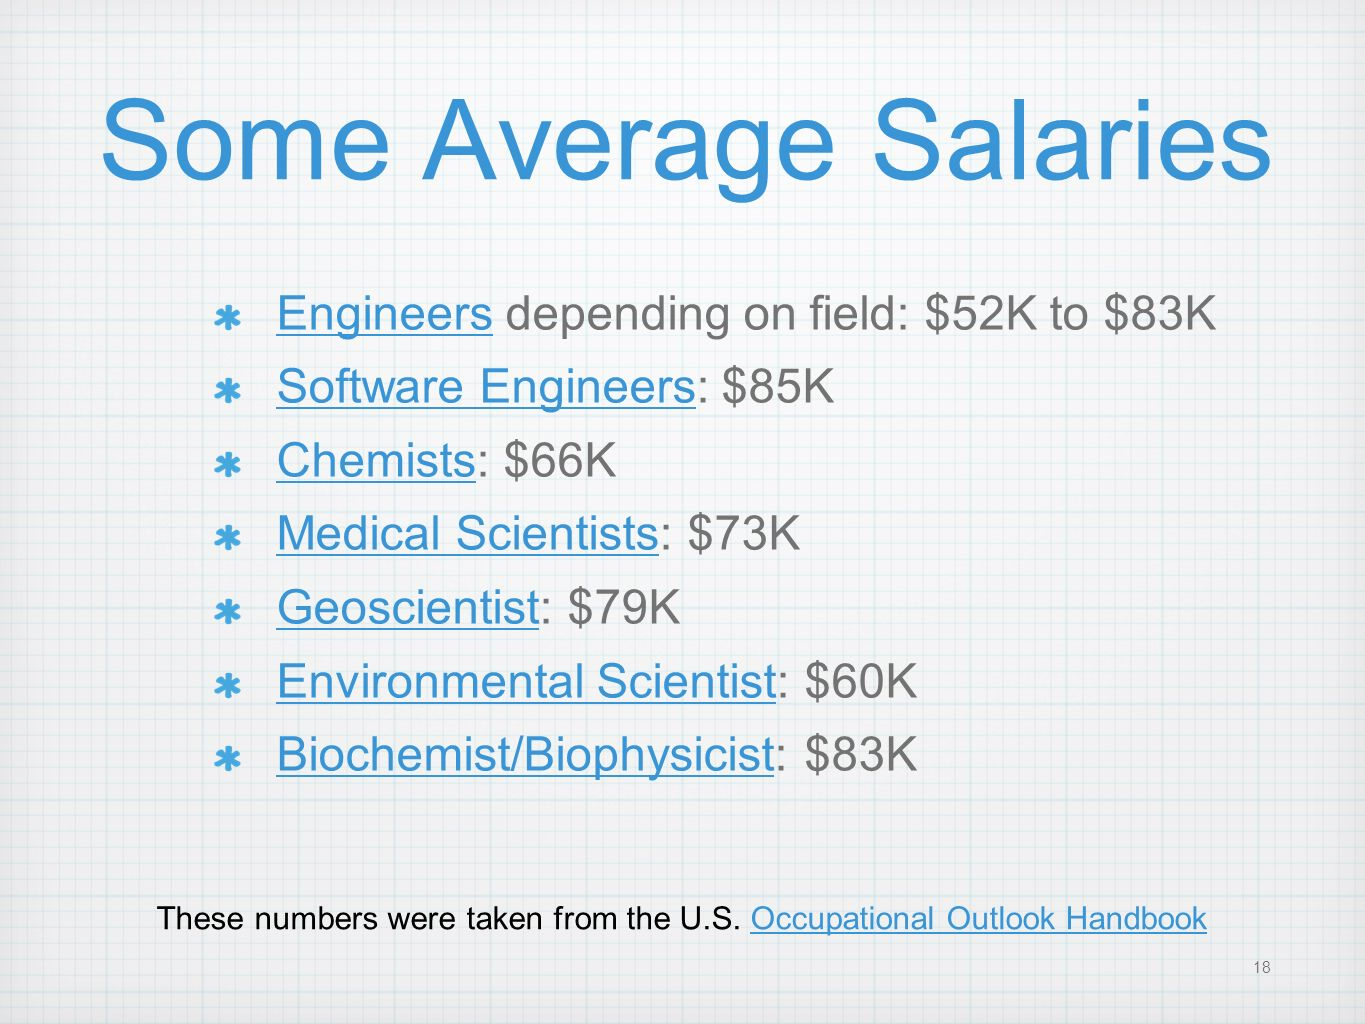 These numbers were taken from the U.S. Occupational Outlook Handbook